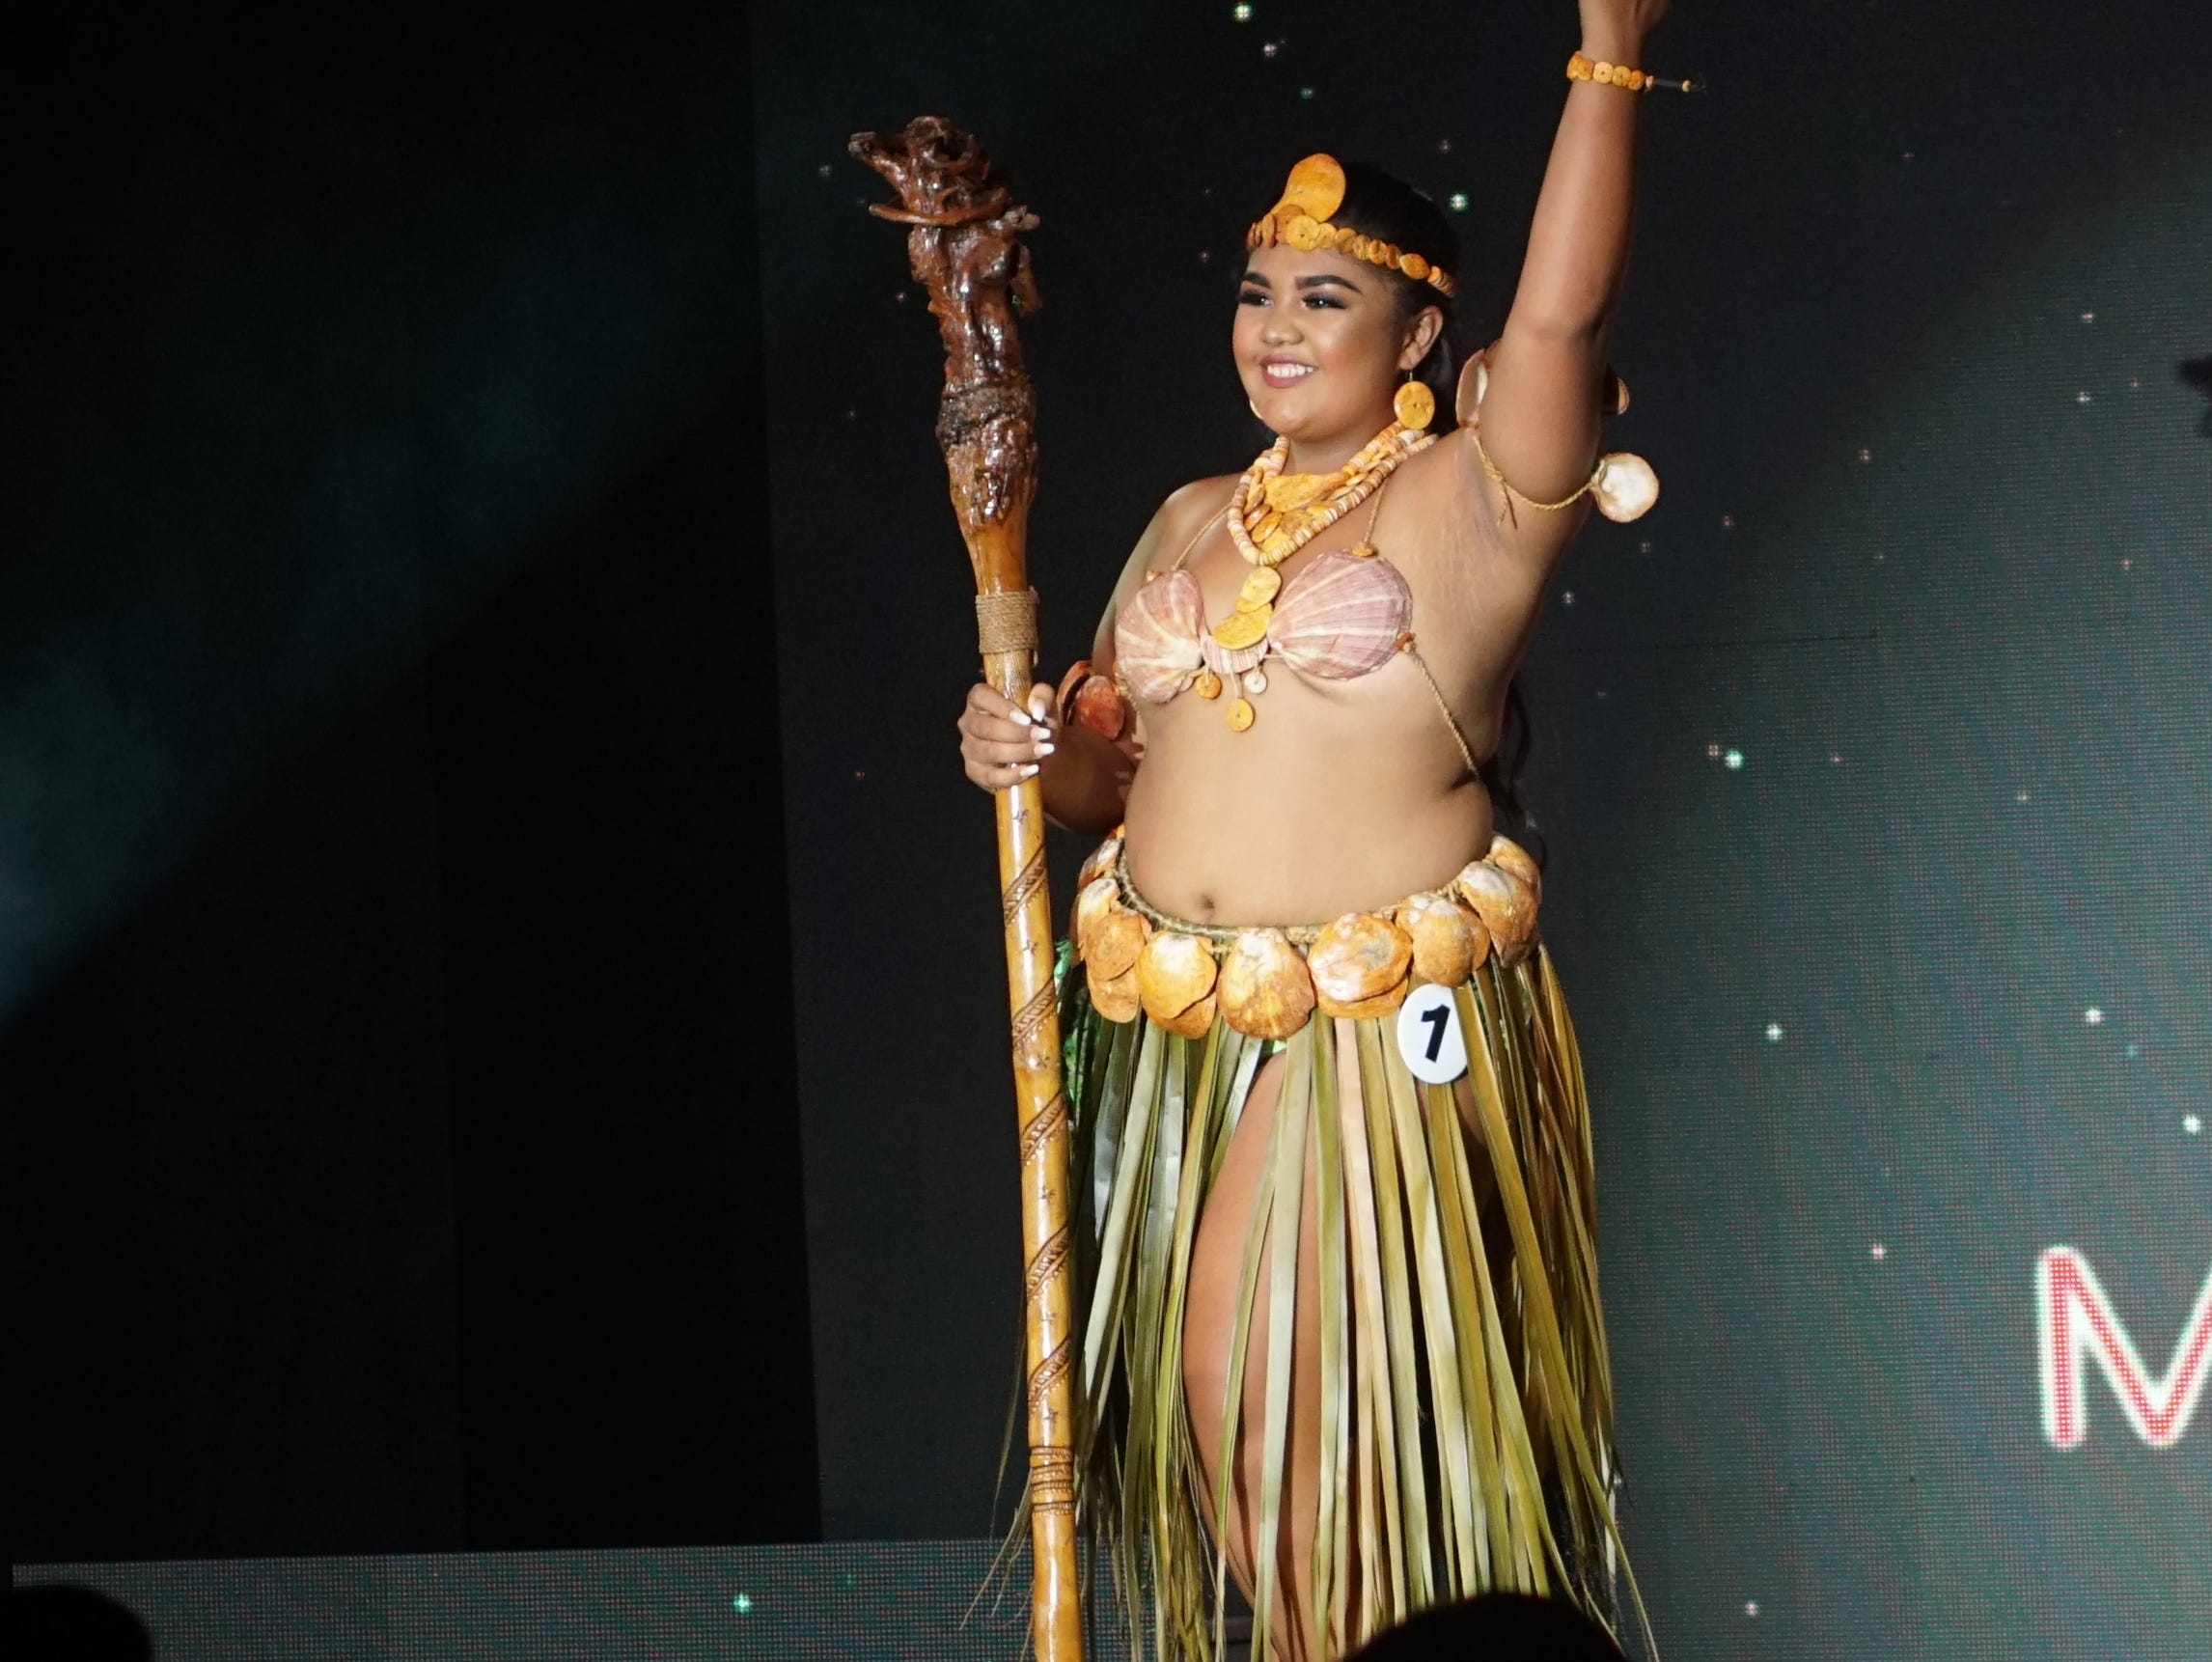 Native Costume portion of the Miss Universe Guam 2018 pageant, contestant 1  Shaeleen Nicole Pruyne Salas.  The pageant was held at  Sheraton Laguna Guam Resort on Aug. 15.